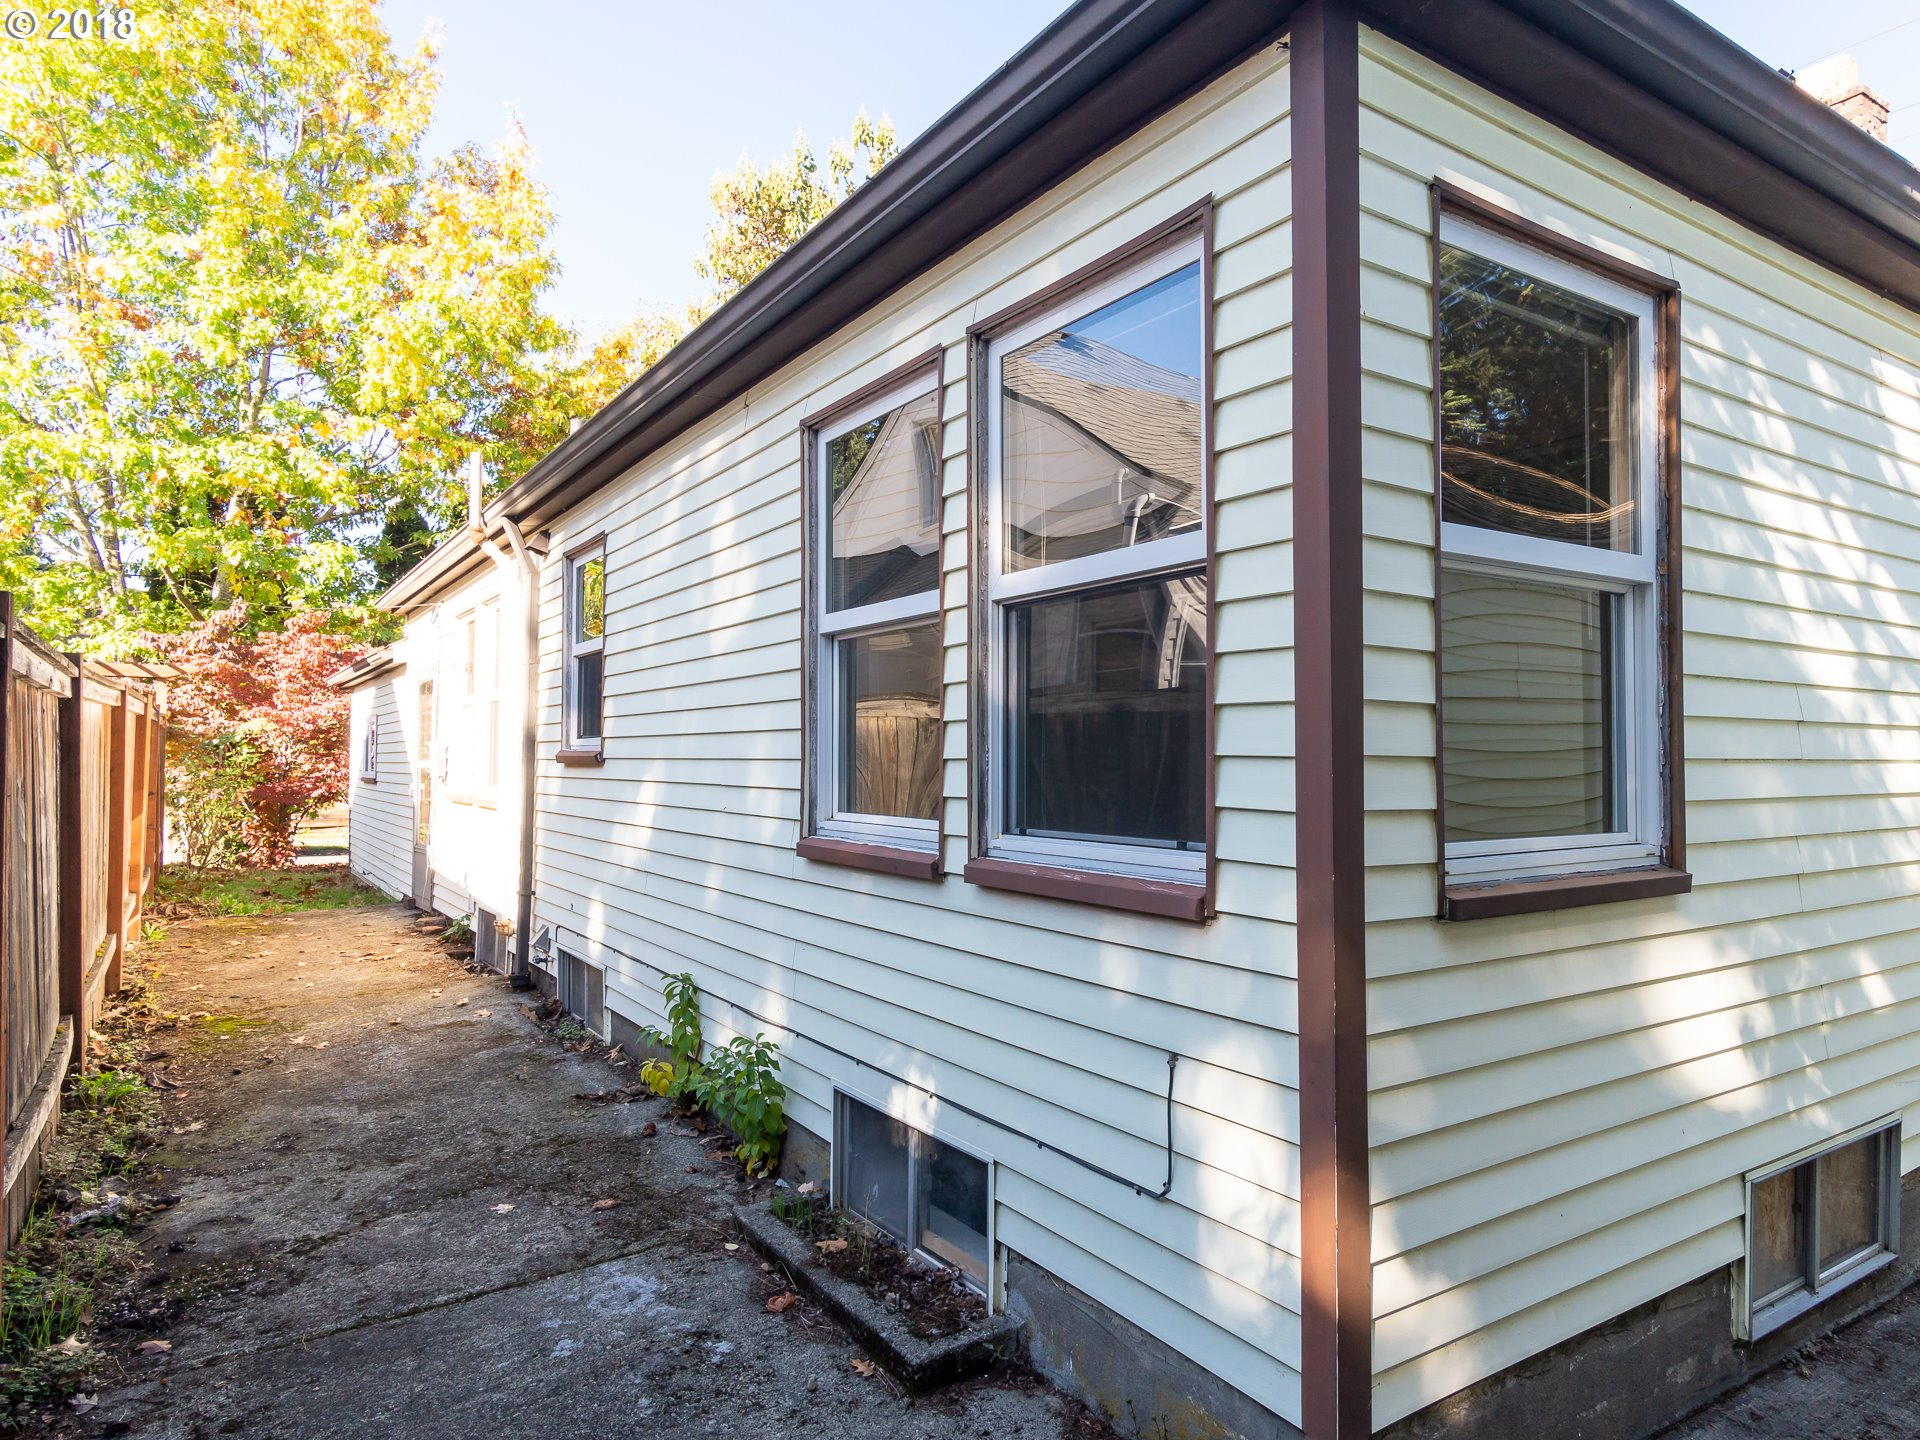 3552 NE KILLINGSWORTH ST Portland, OR 97211 - MLS #: 18696417